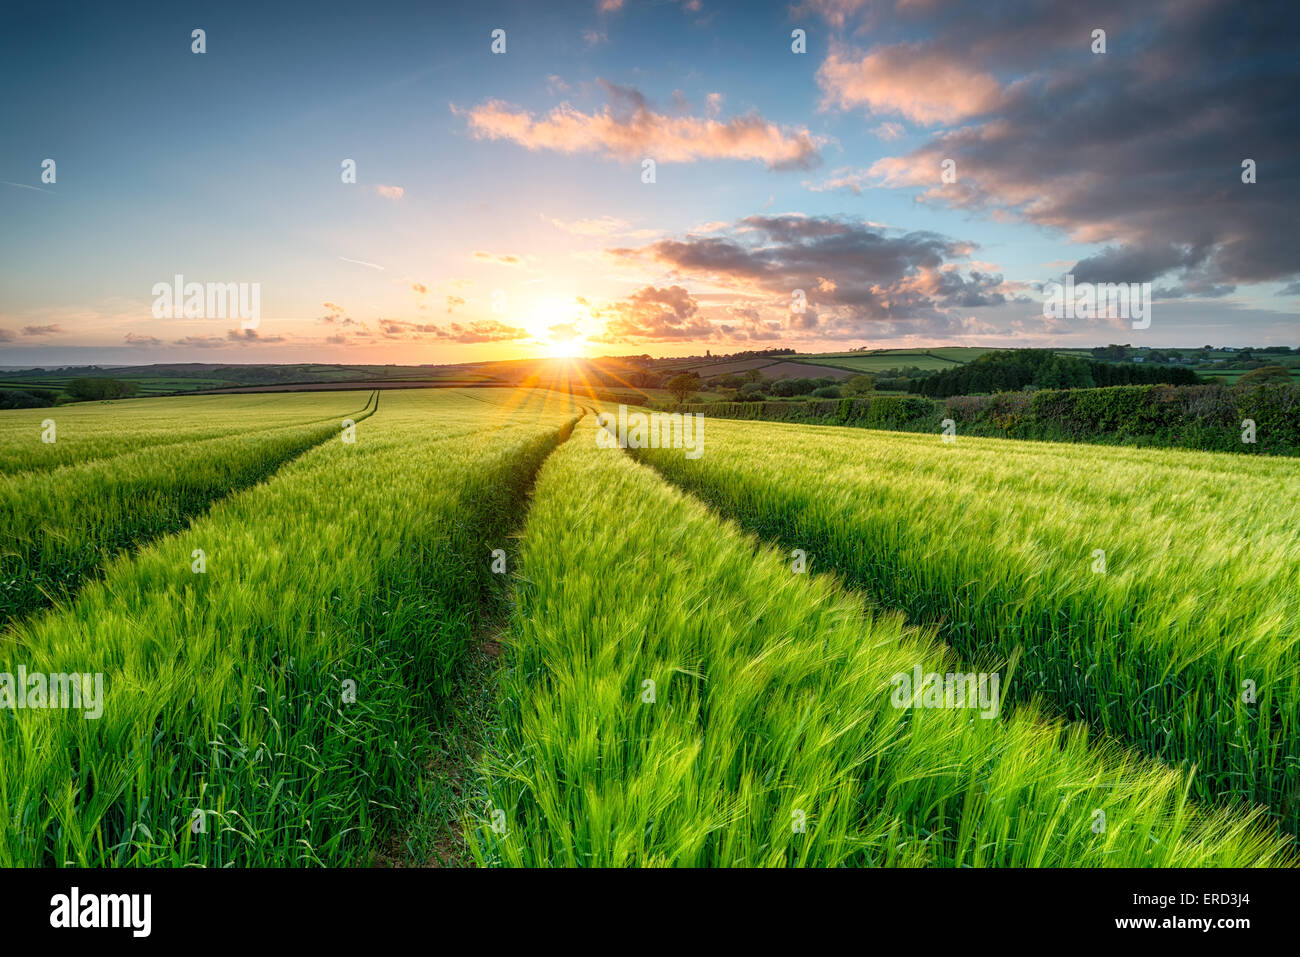 Sunset over fileds of ripening barley near Wadebridge in Cornwall - Stock Image